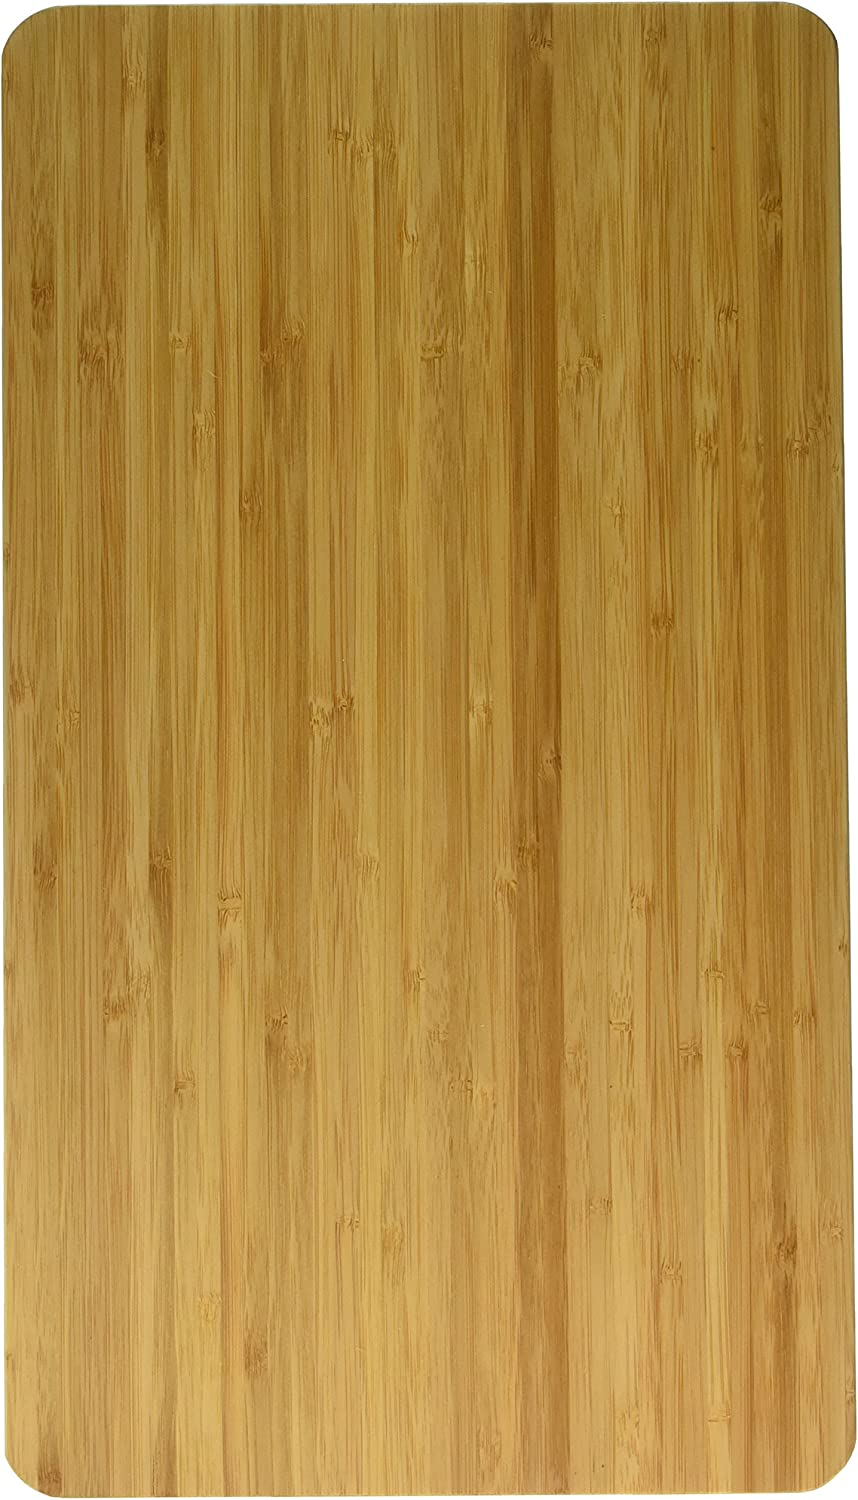 Breville BOV800CB Bamboo Cutting Board Special Large-scale sale Campaign Oven Smart the for